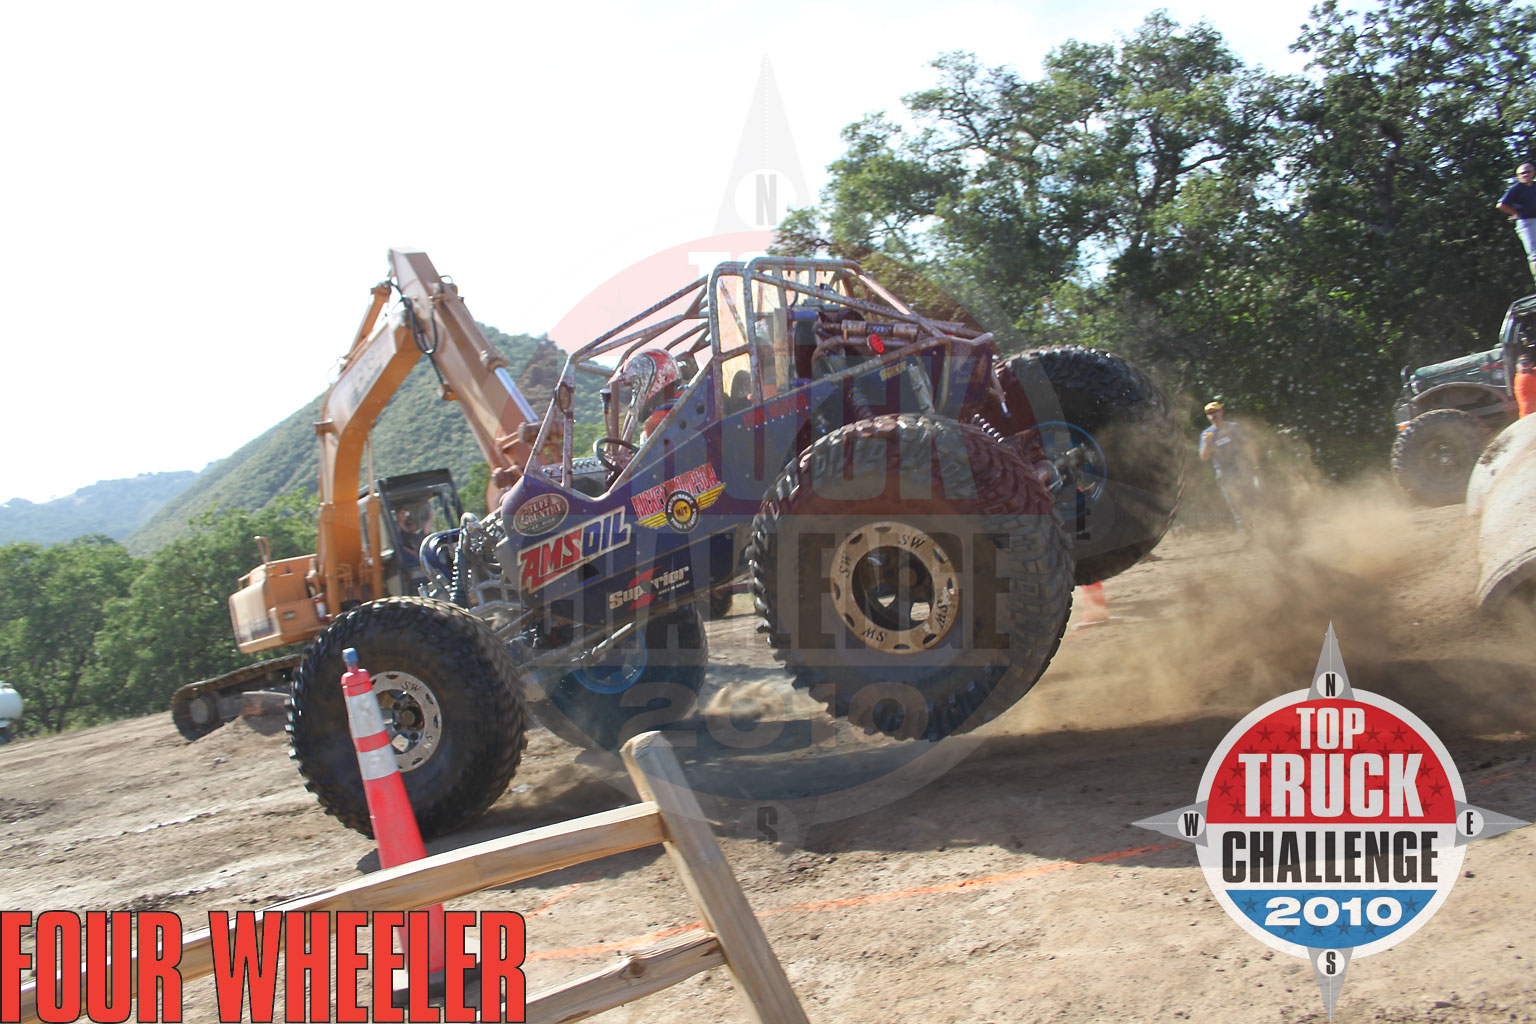 129 1006 4268+2010 top truck challenge frame twister+joe quichocho tube chassis cj7 buggy